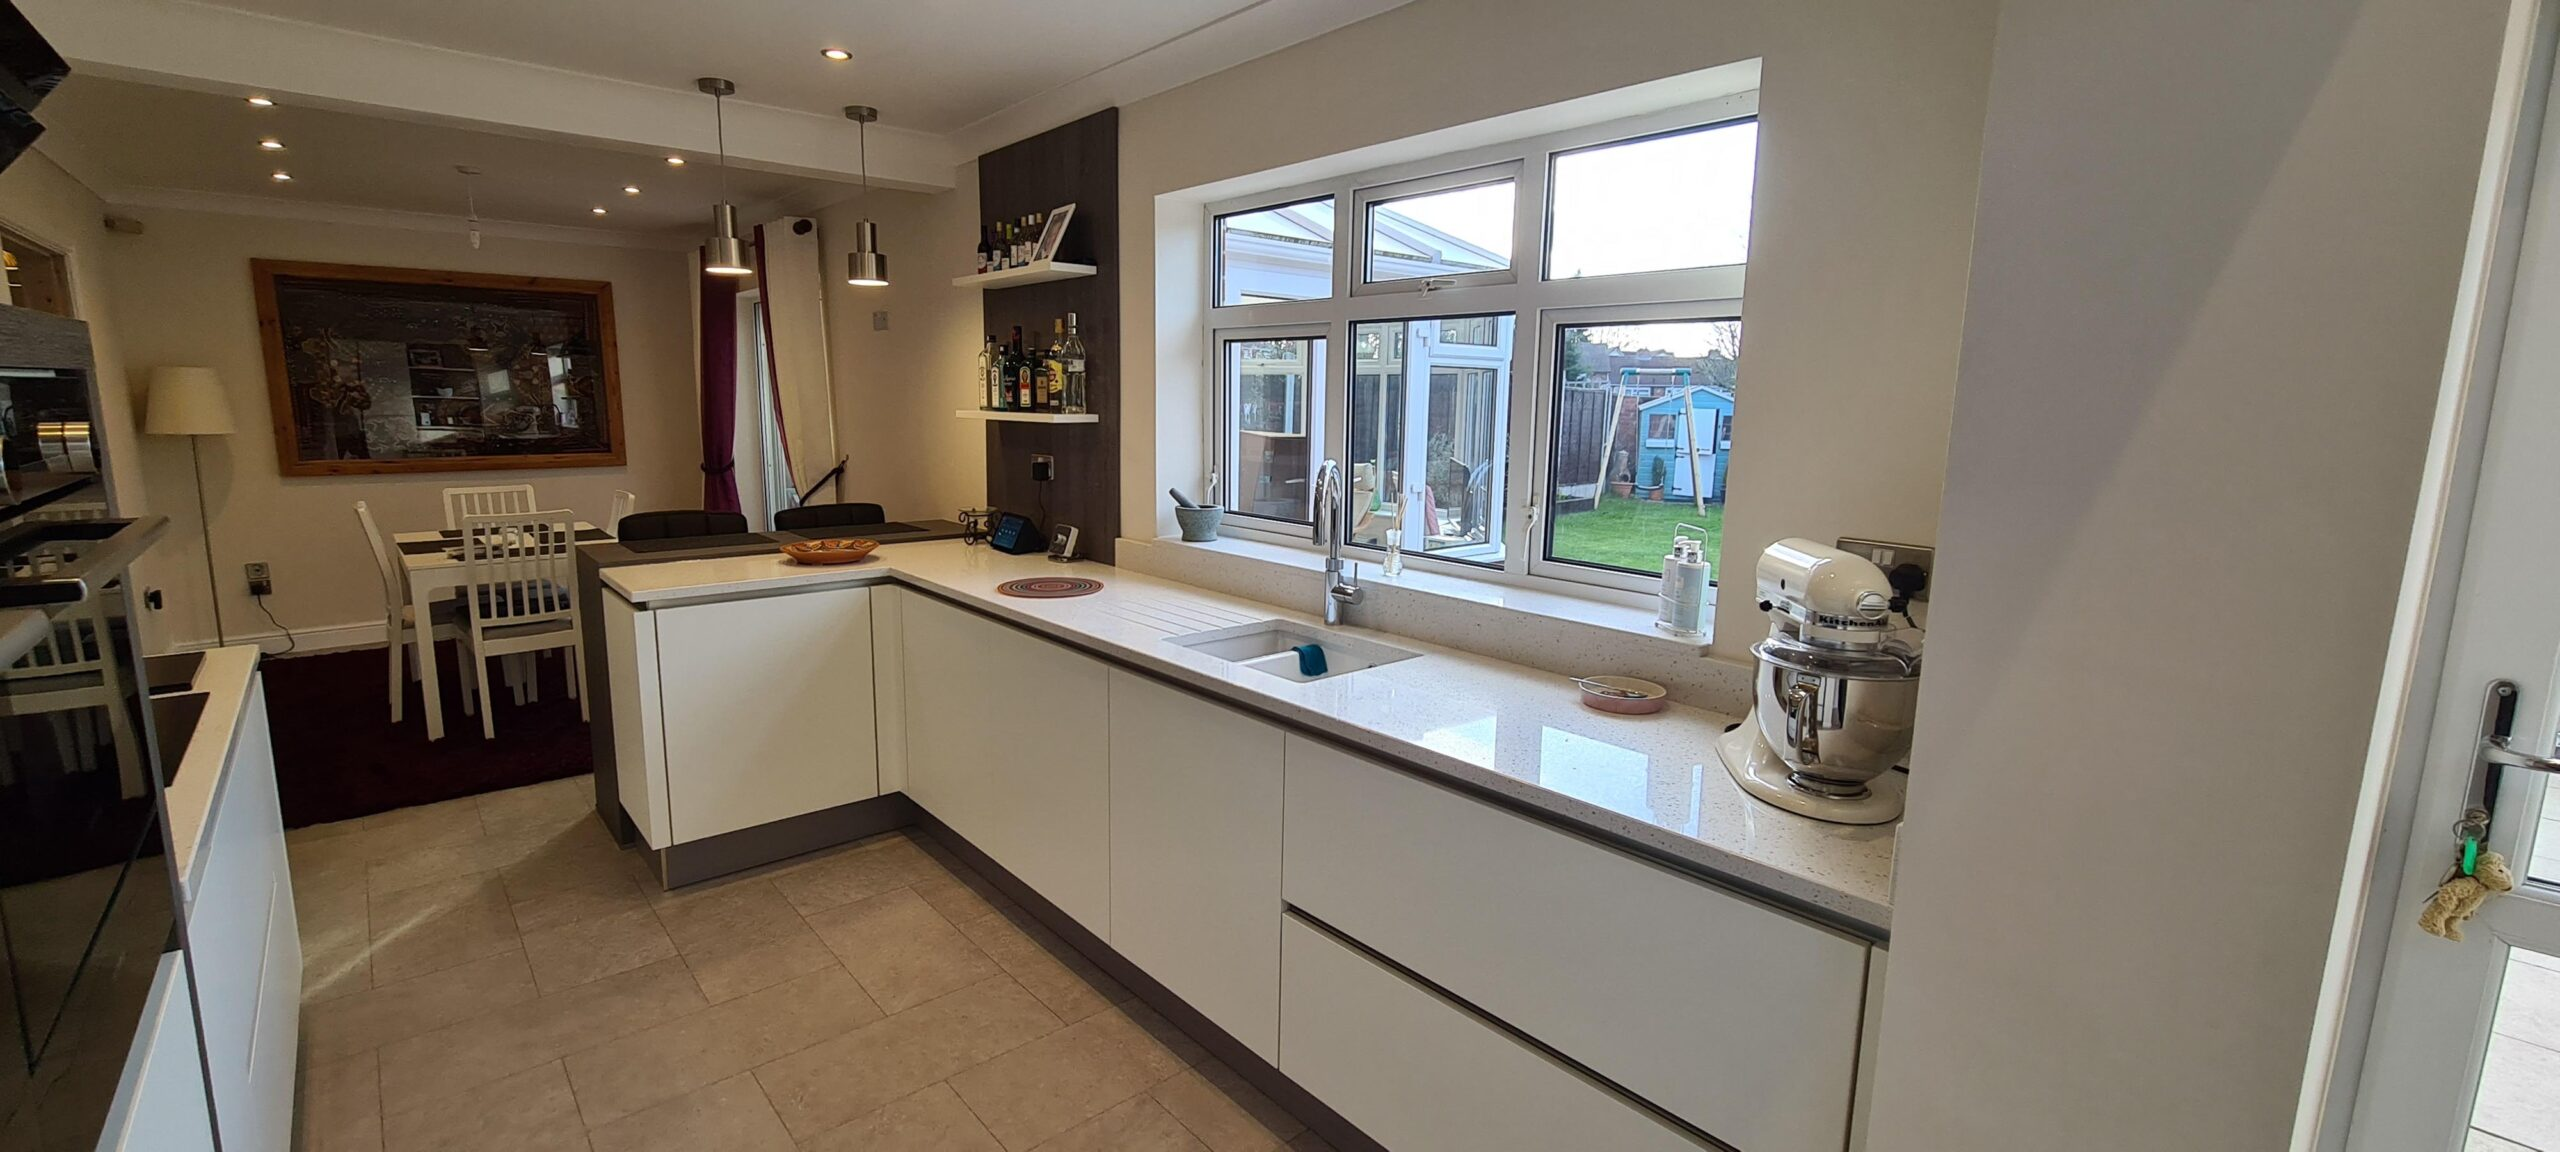 An image of a kitchen with a white marble worktop area